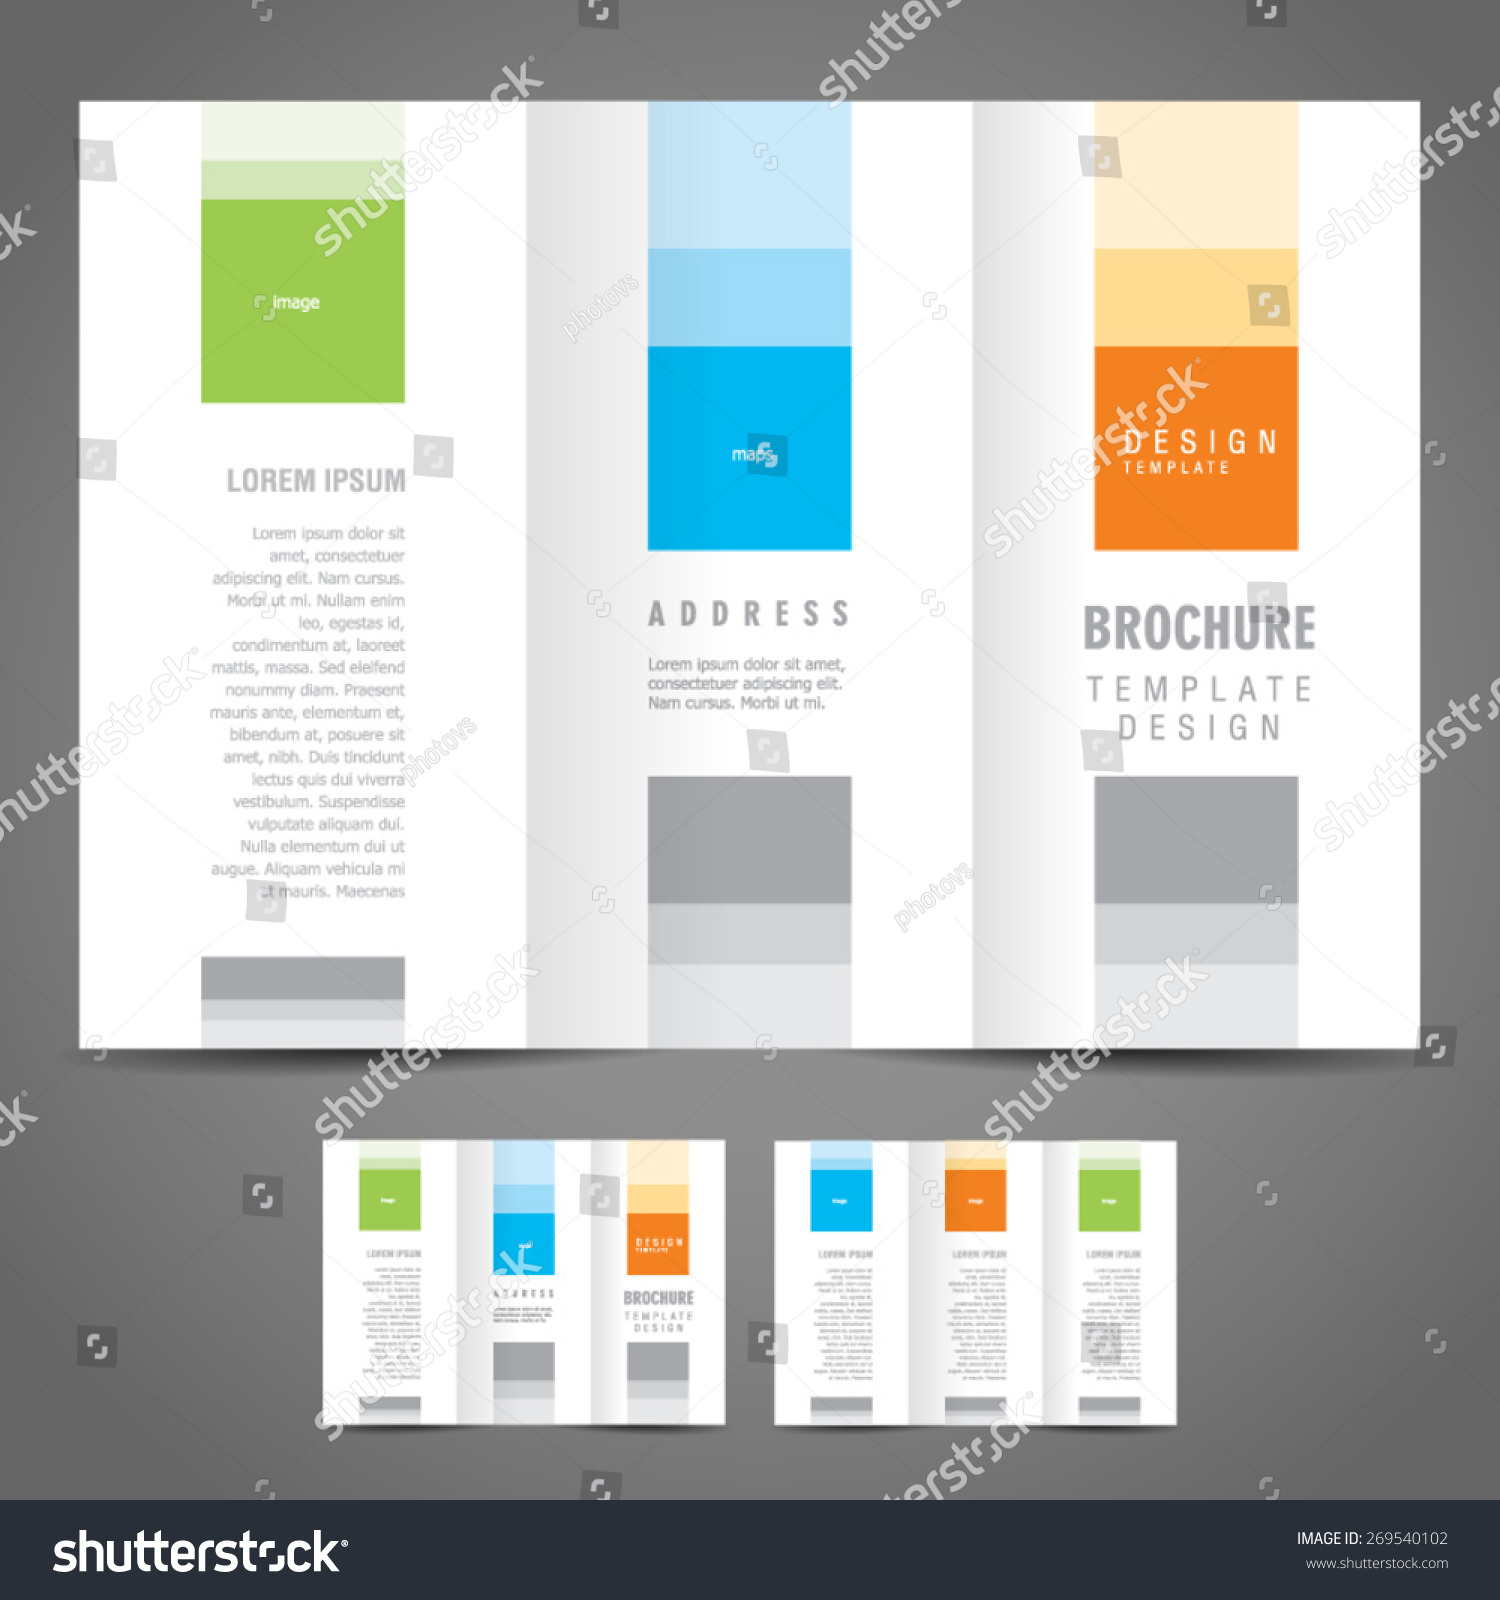 Simple brochure design template trifold stock vector for Simple tri fold brochure template